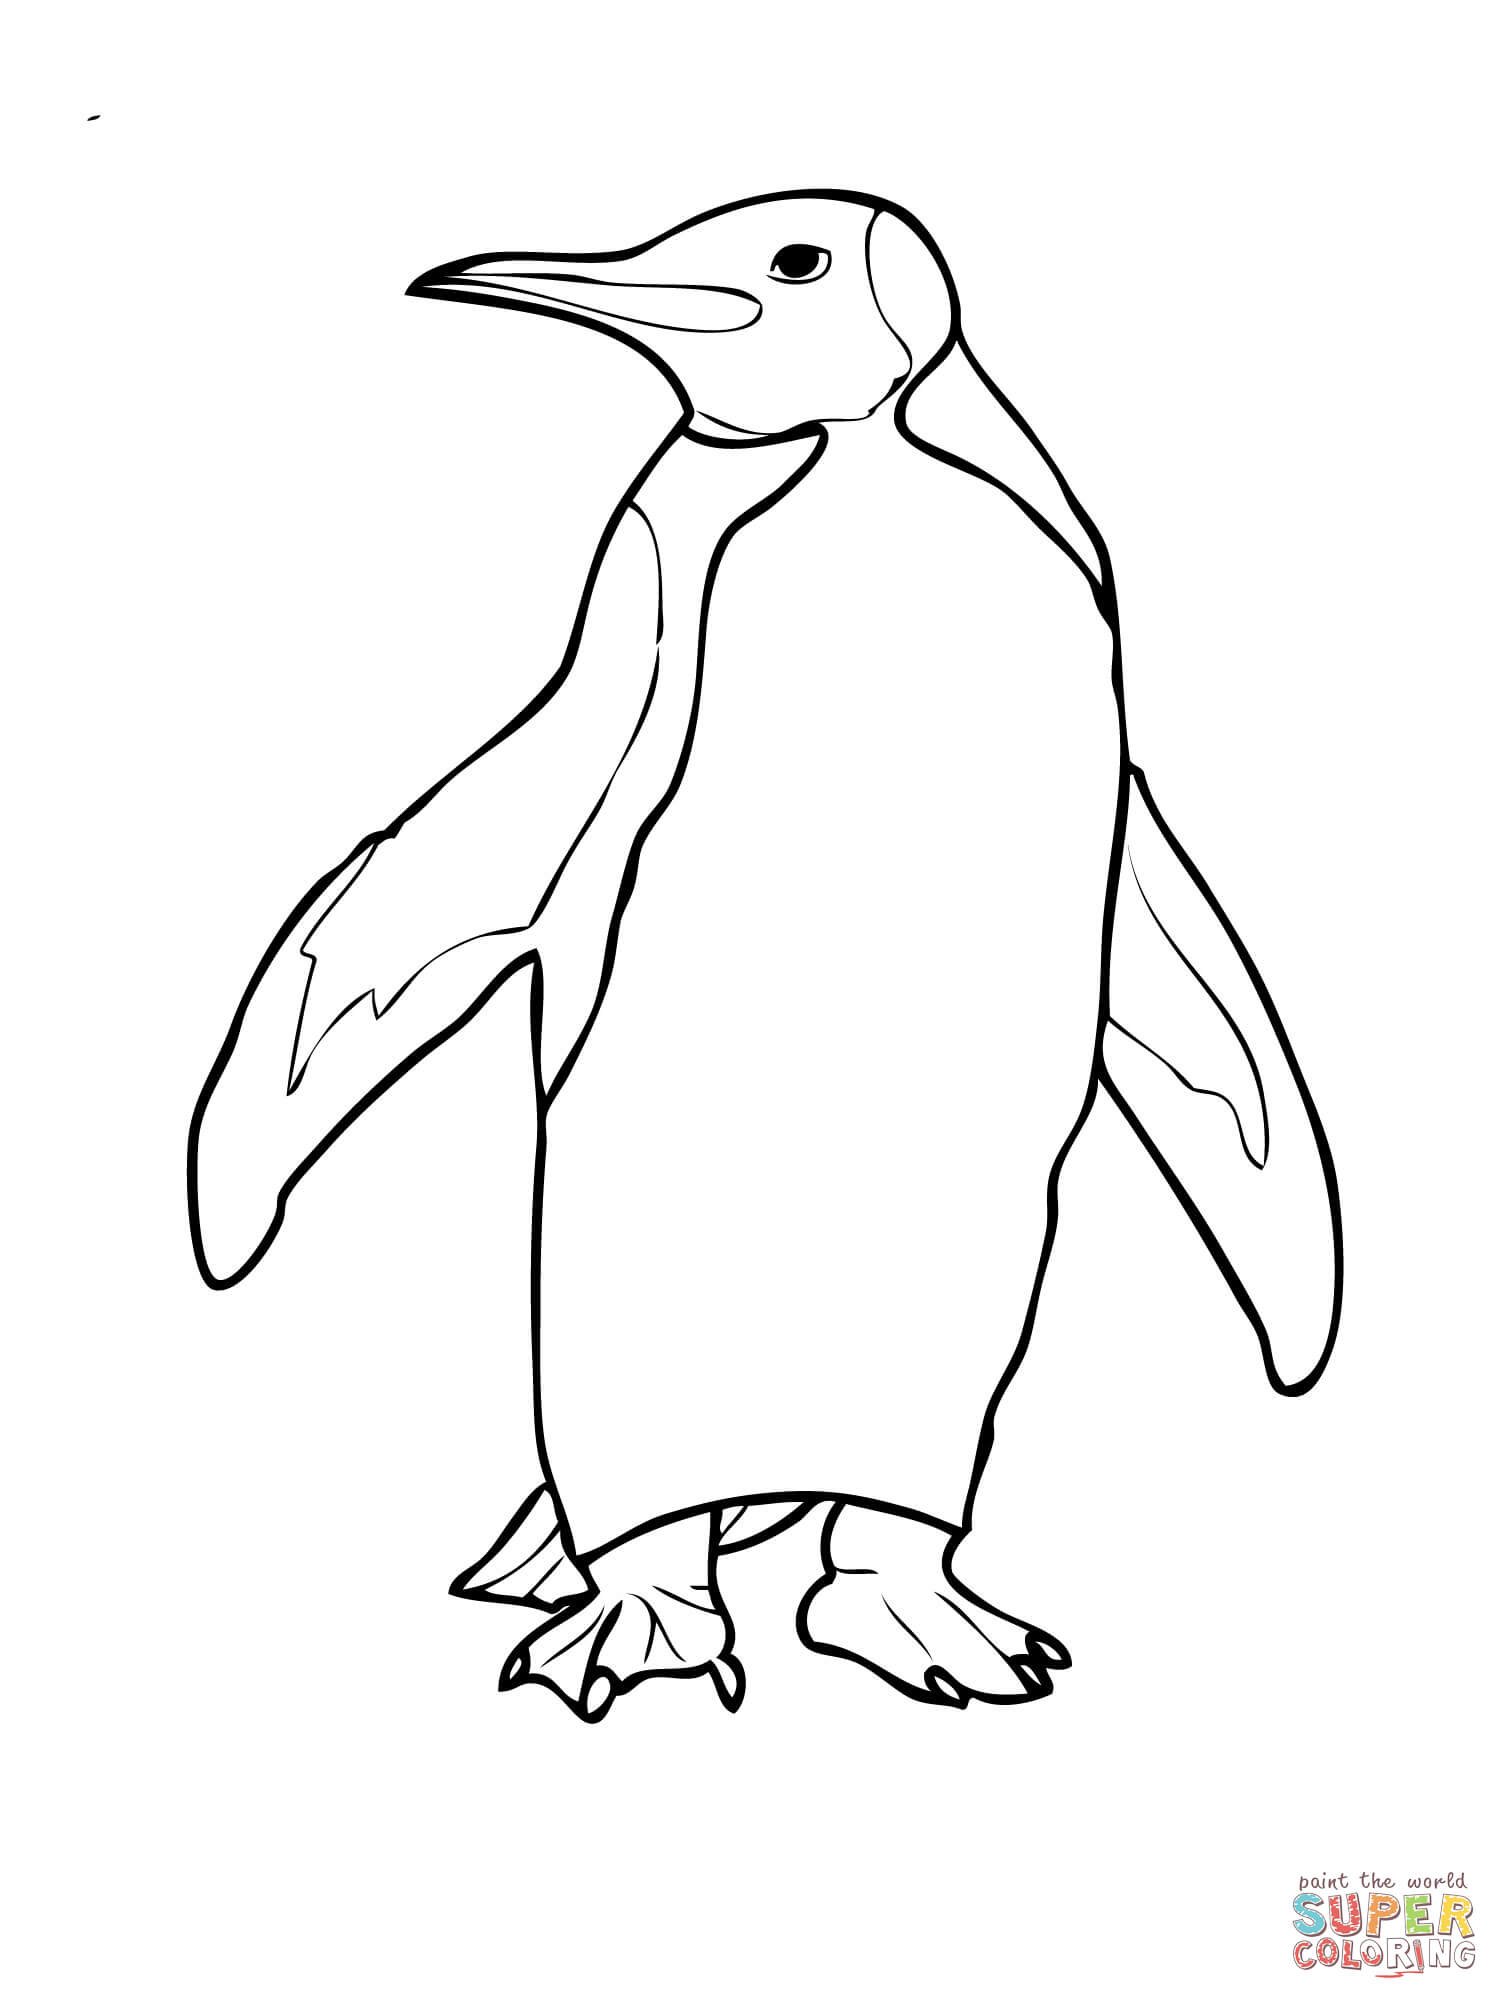 King Emperor Penguins coloring #7, Download drawings